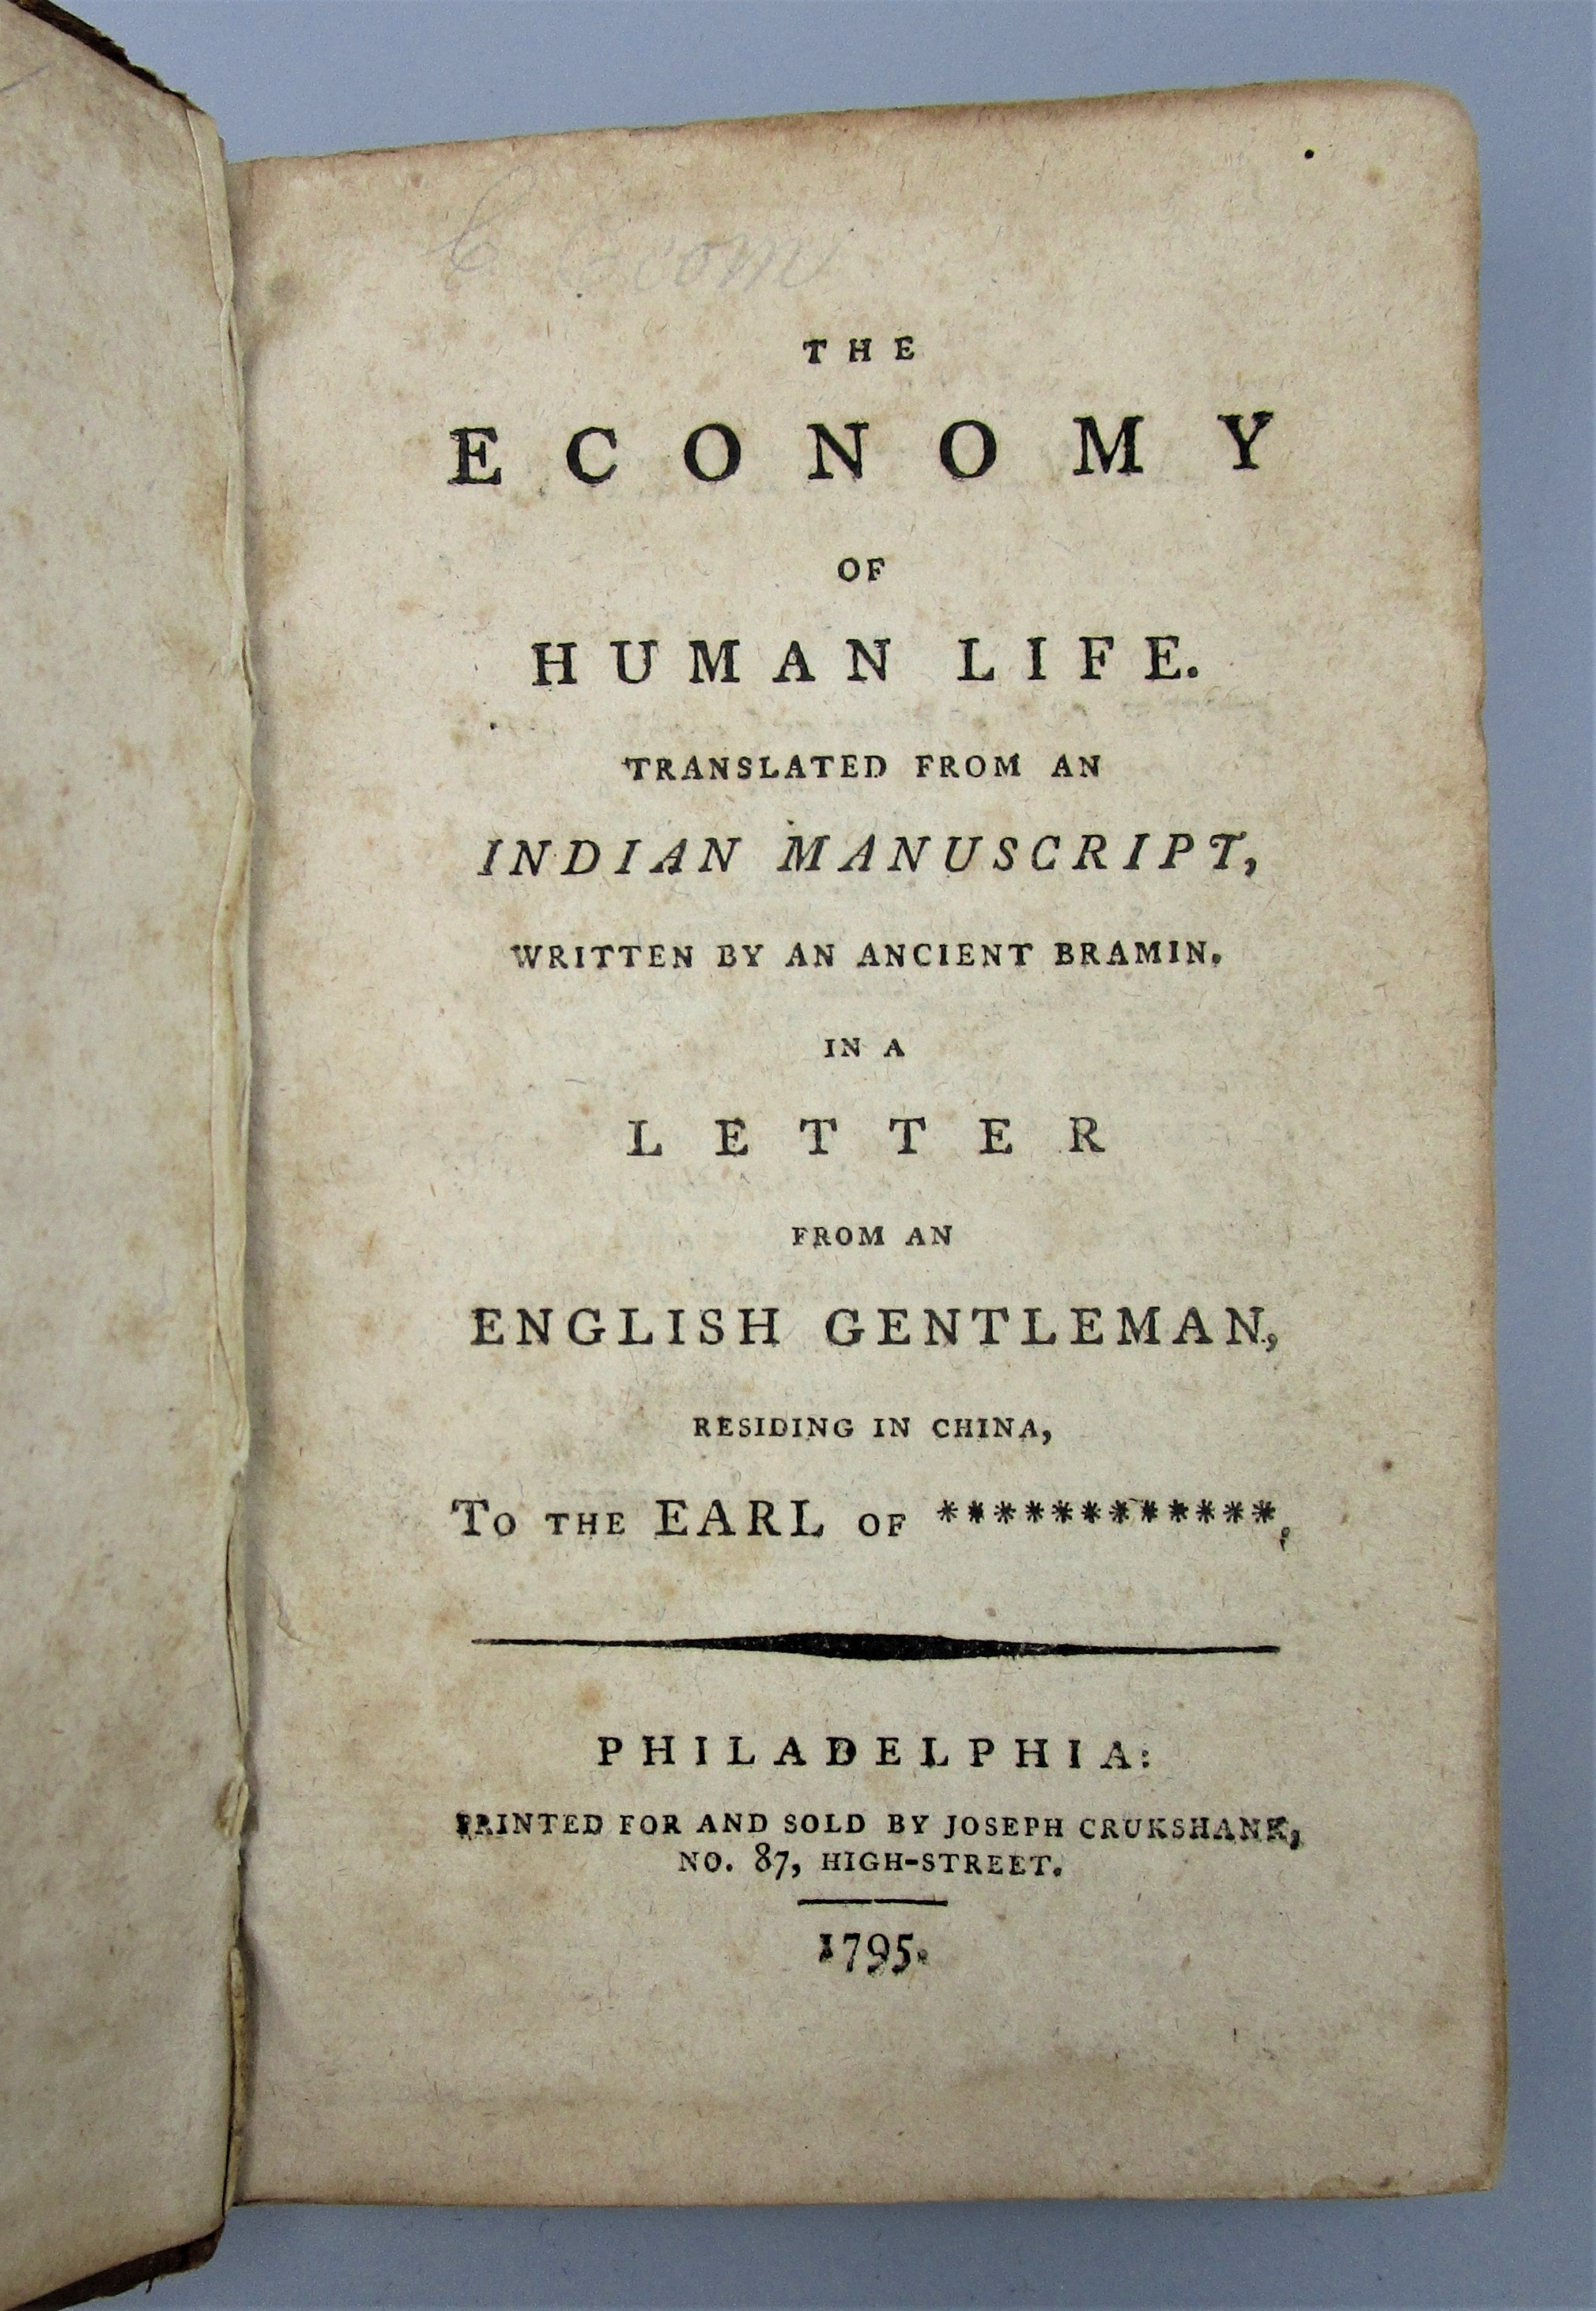 THE ECONOMY OF HUMAN LIFE, by Joseph Crukshank - 1795